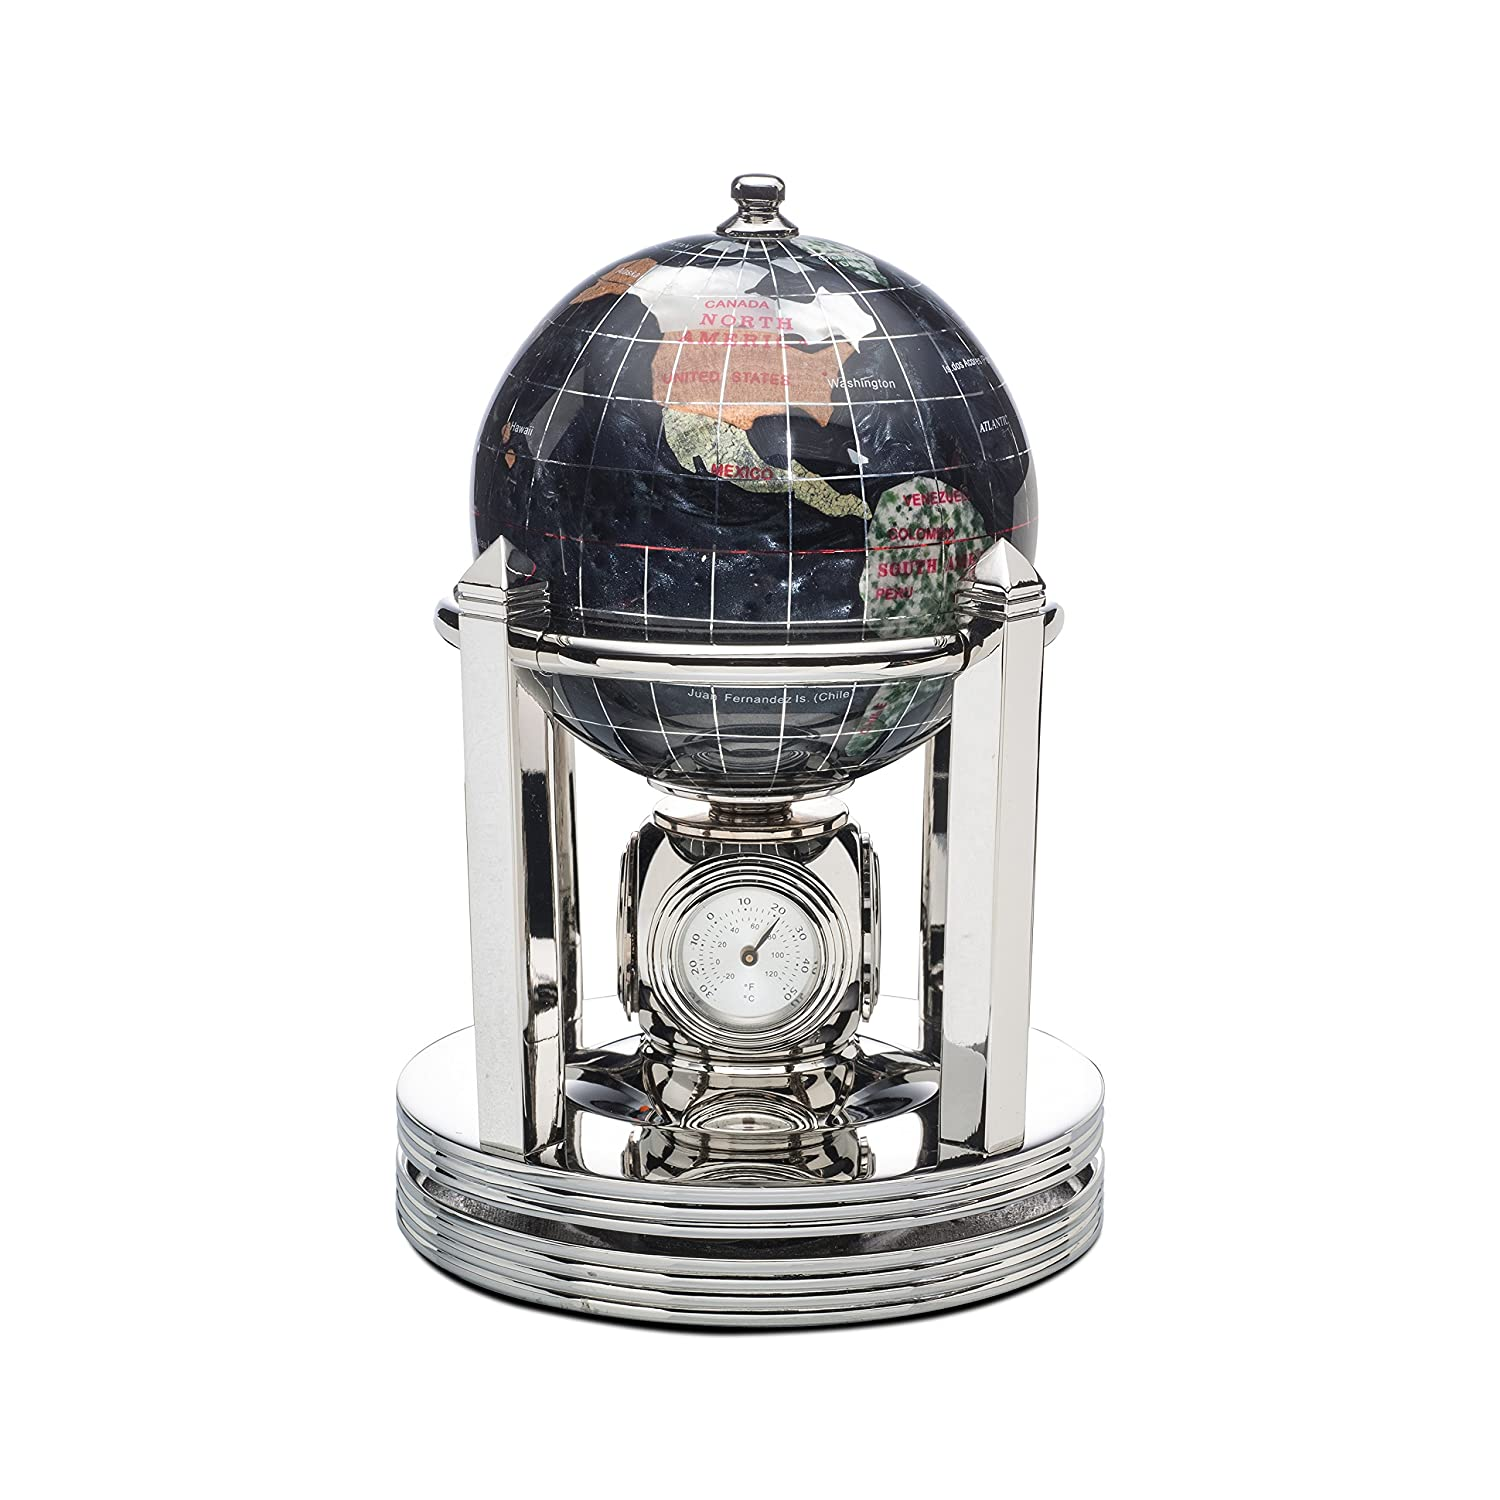 Alexander Kalifano Black Opalite Gemstone Globe with clock, thermometer, and/or barometer